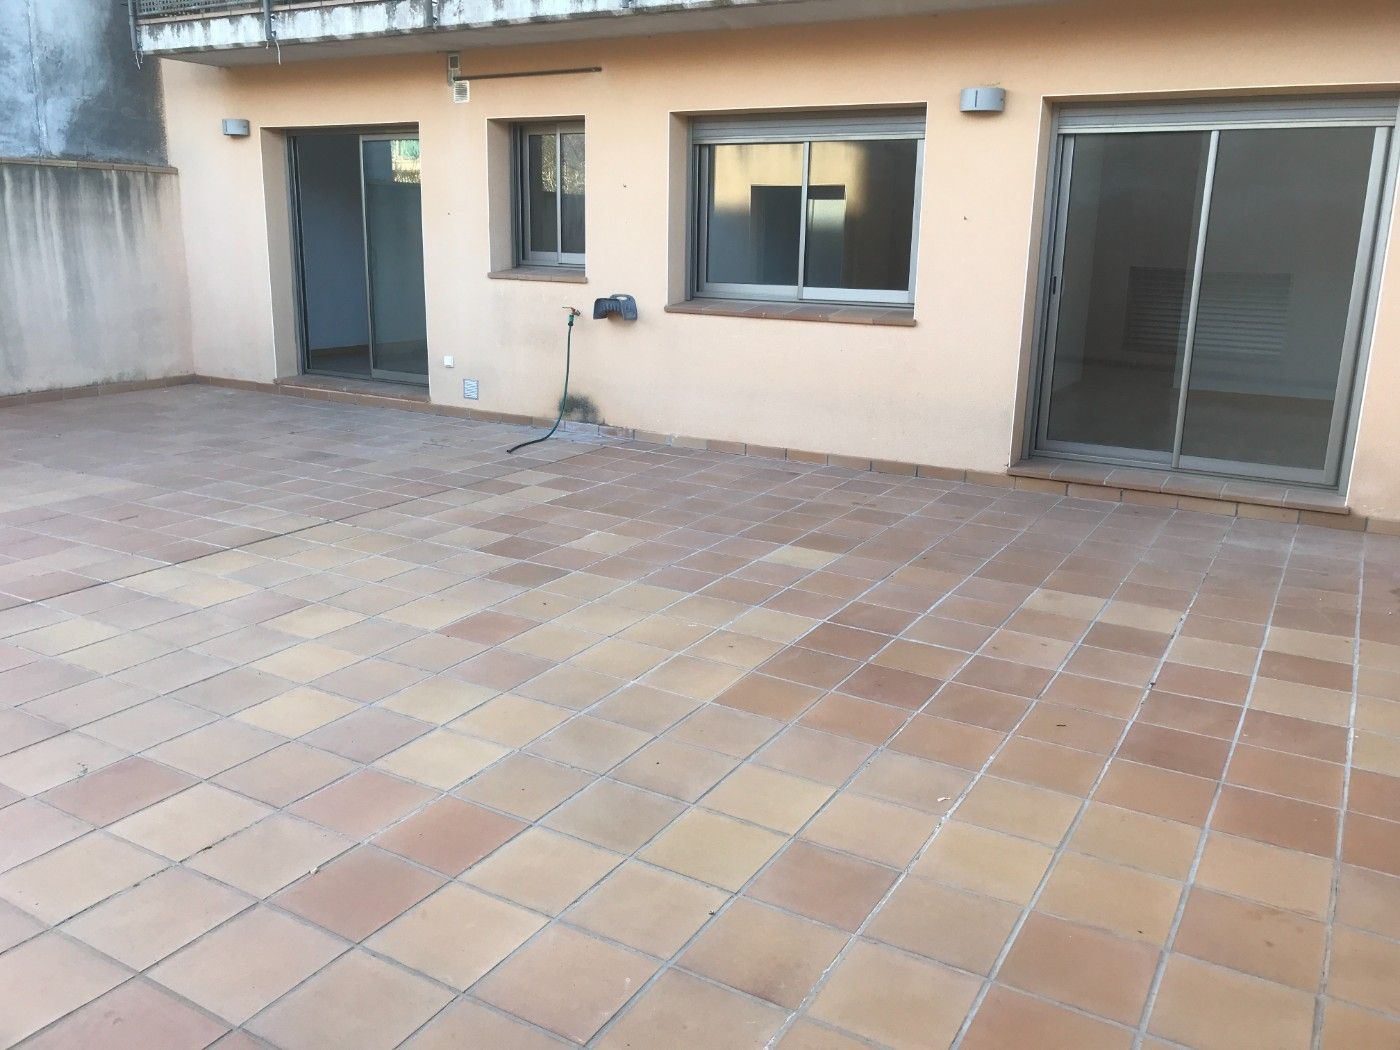 Location Appartement à Carrer santa llúcia, 22. Con terraza privada de 70 m2